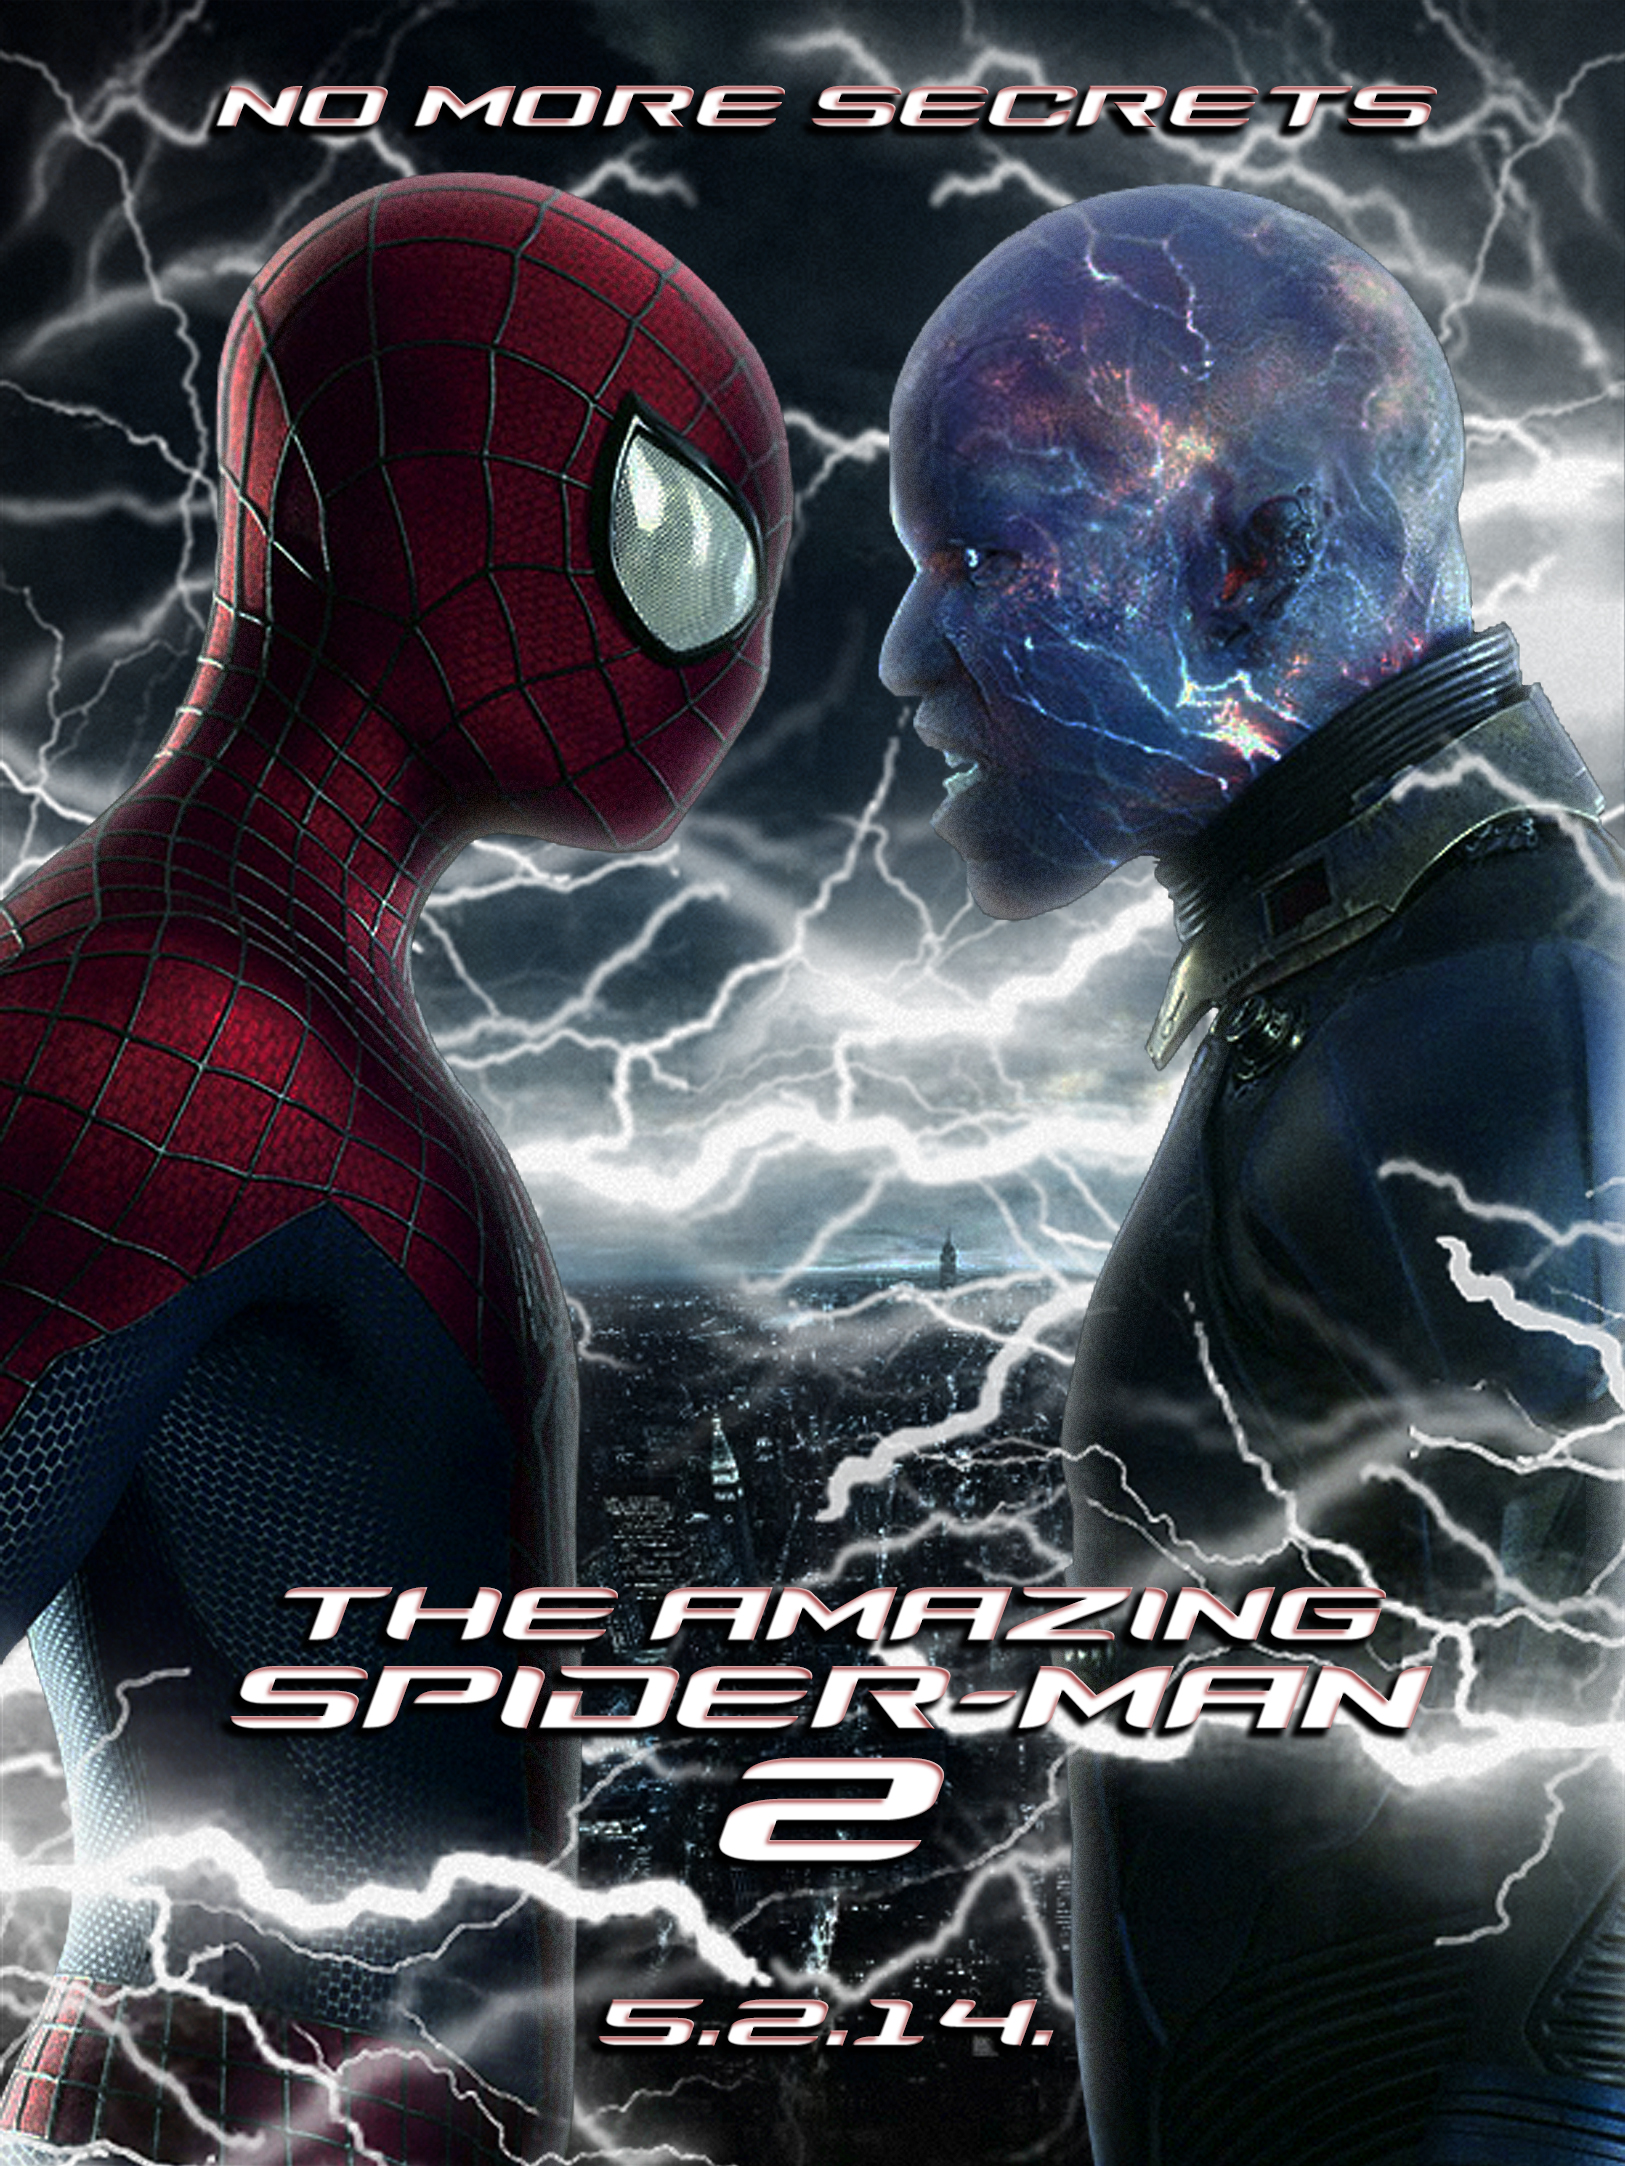 The Amazing Spider-Man 2 - Electro Poster by bijit69 on ...